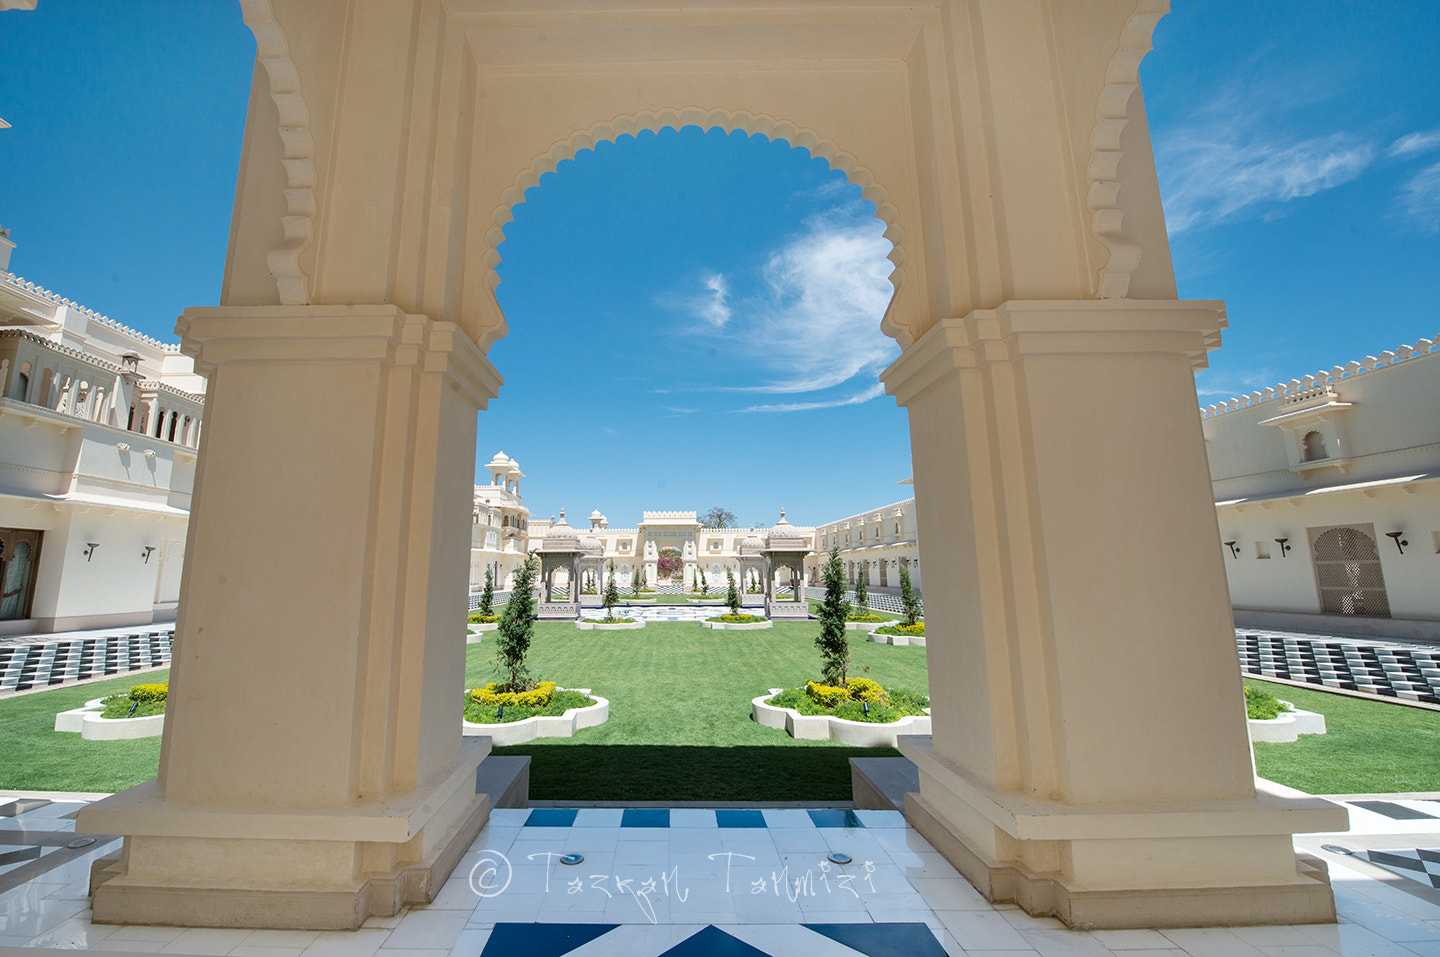 Photograph Udaivilas by Tazran Tanmizi on 500px